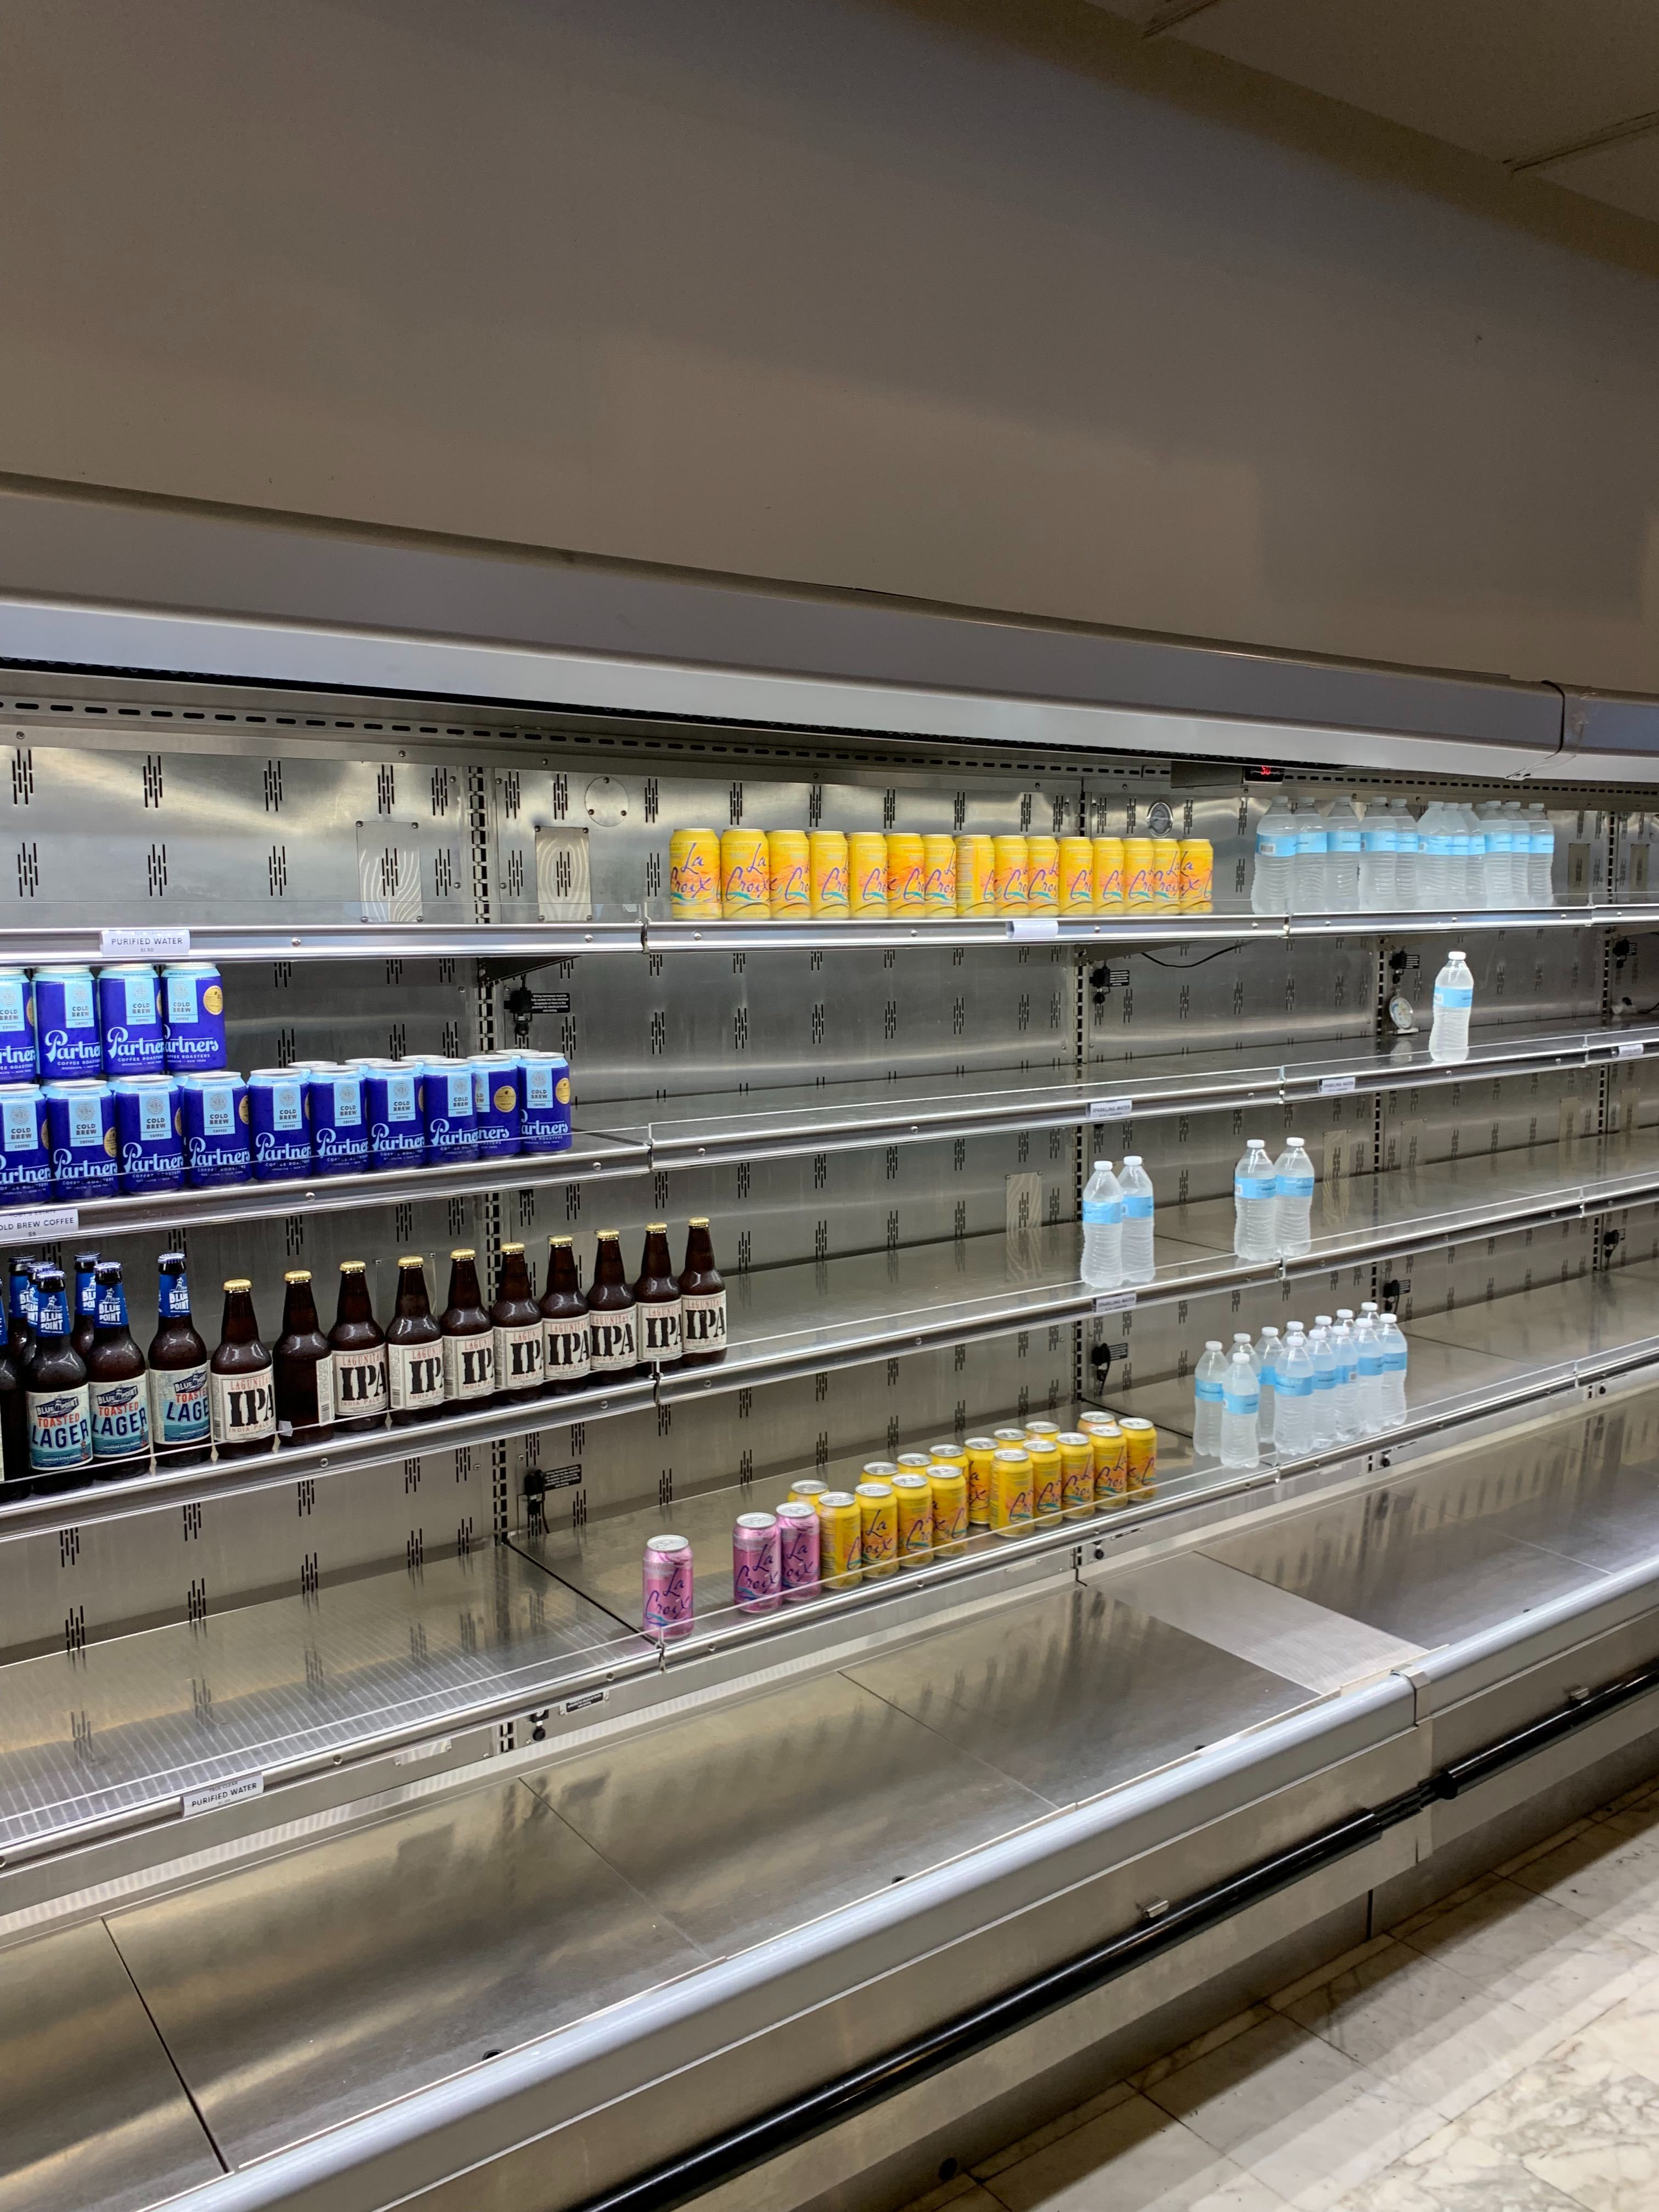 Store shelves that are mostly empty except for a few cold drinks